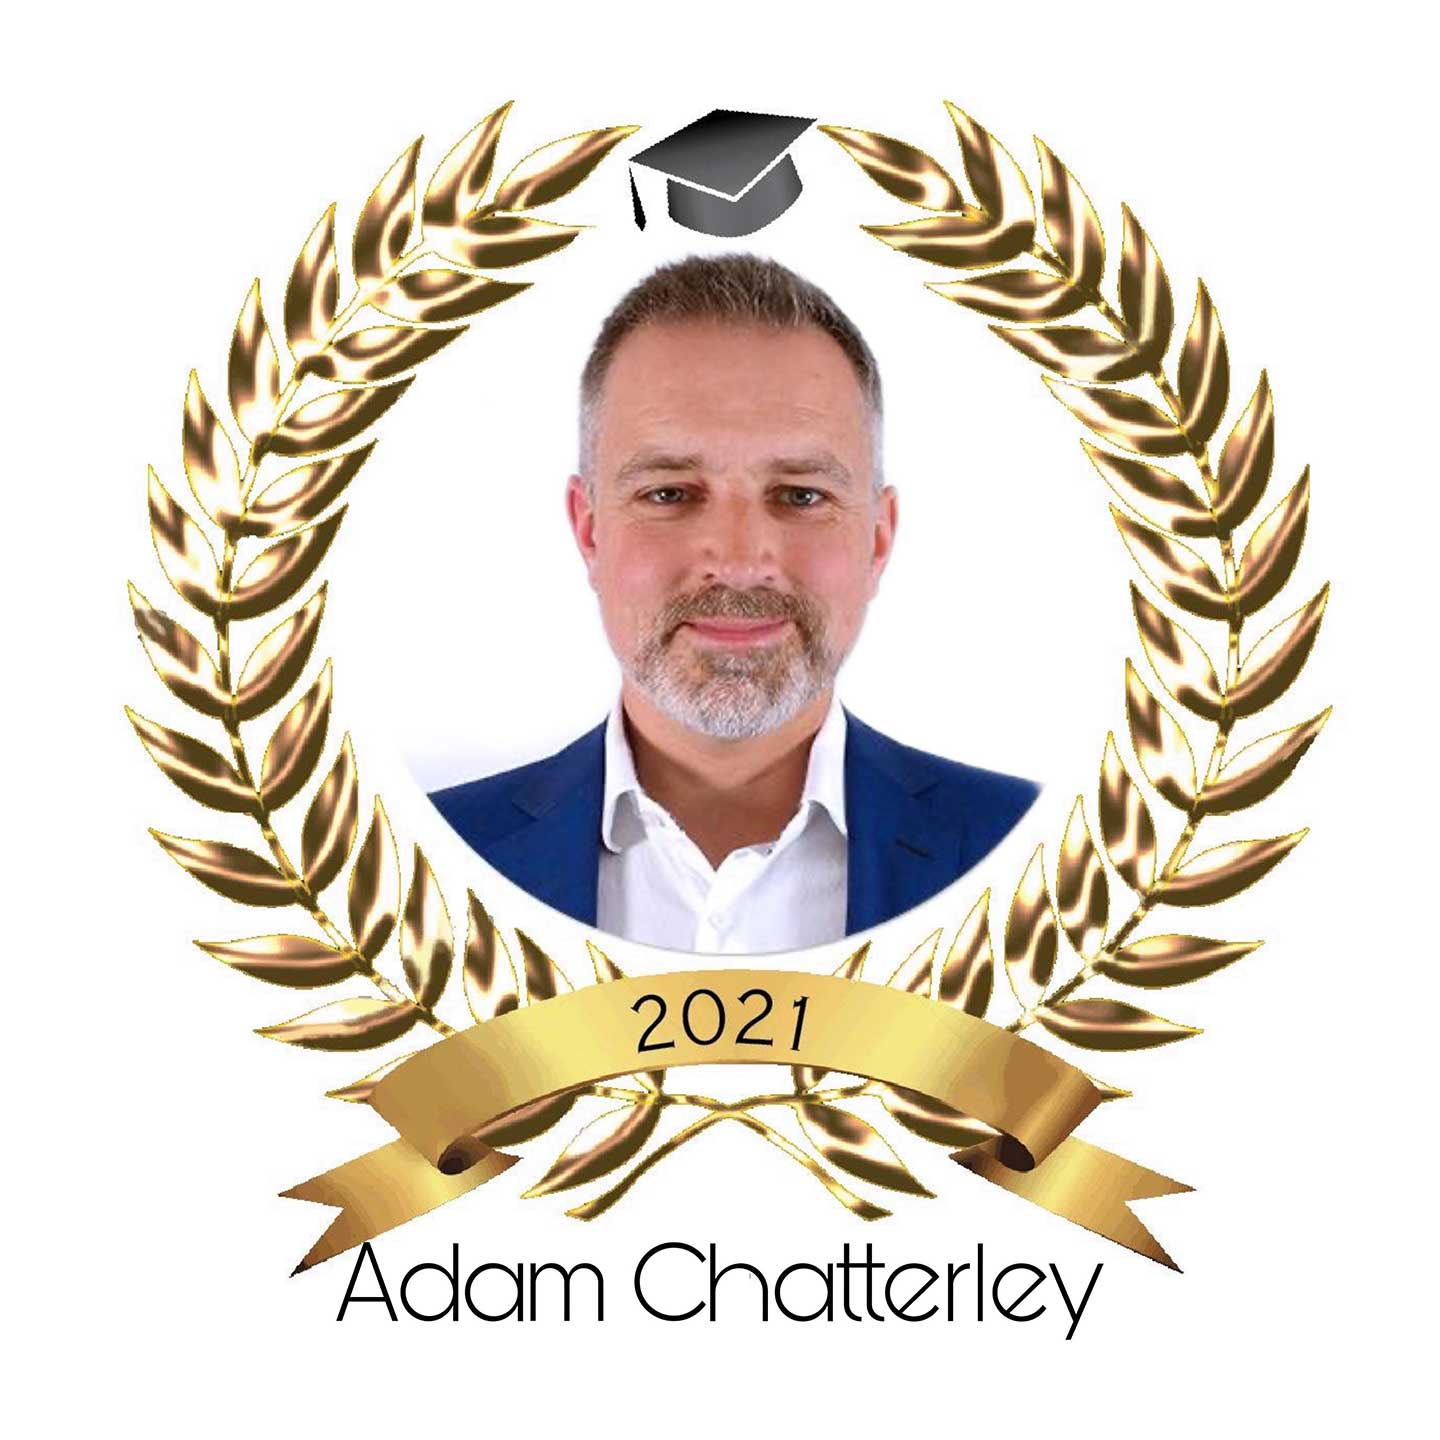 Adam-Chatterly-2021